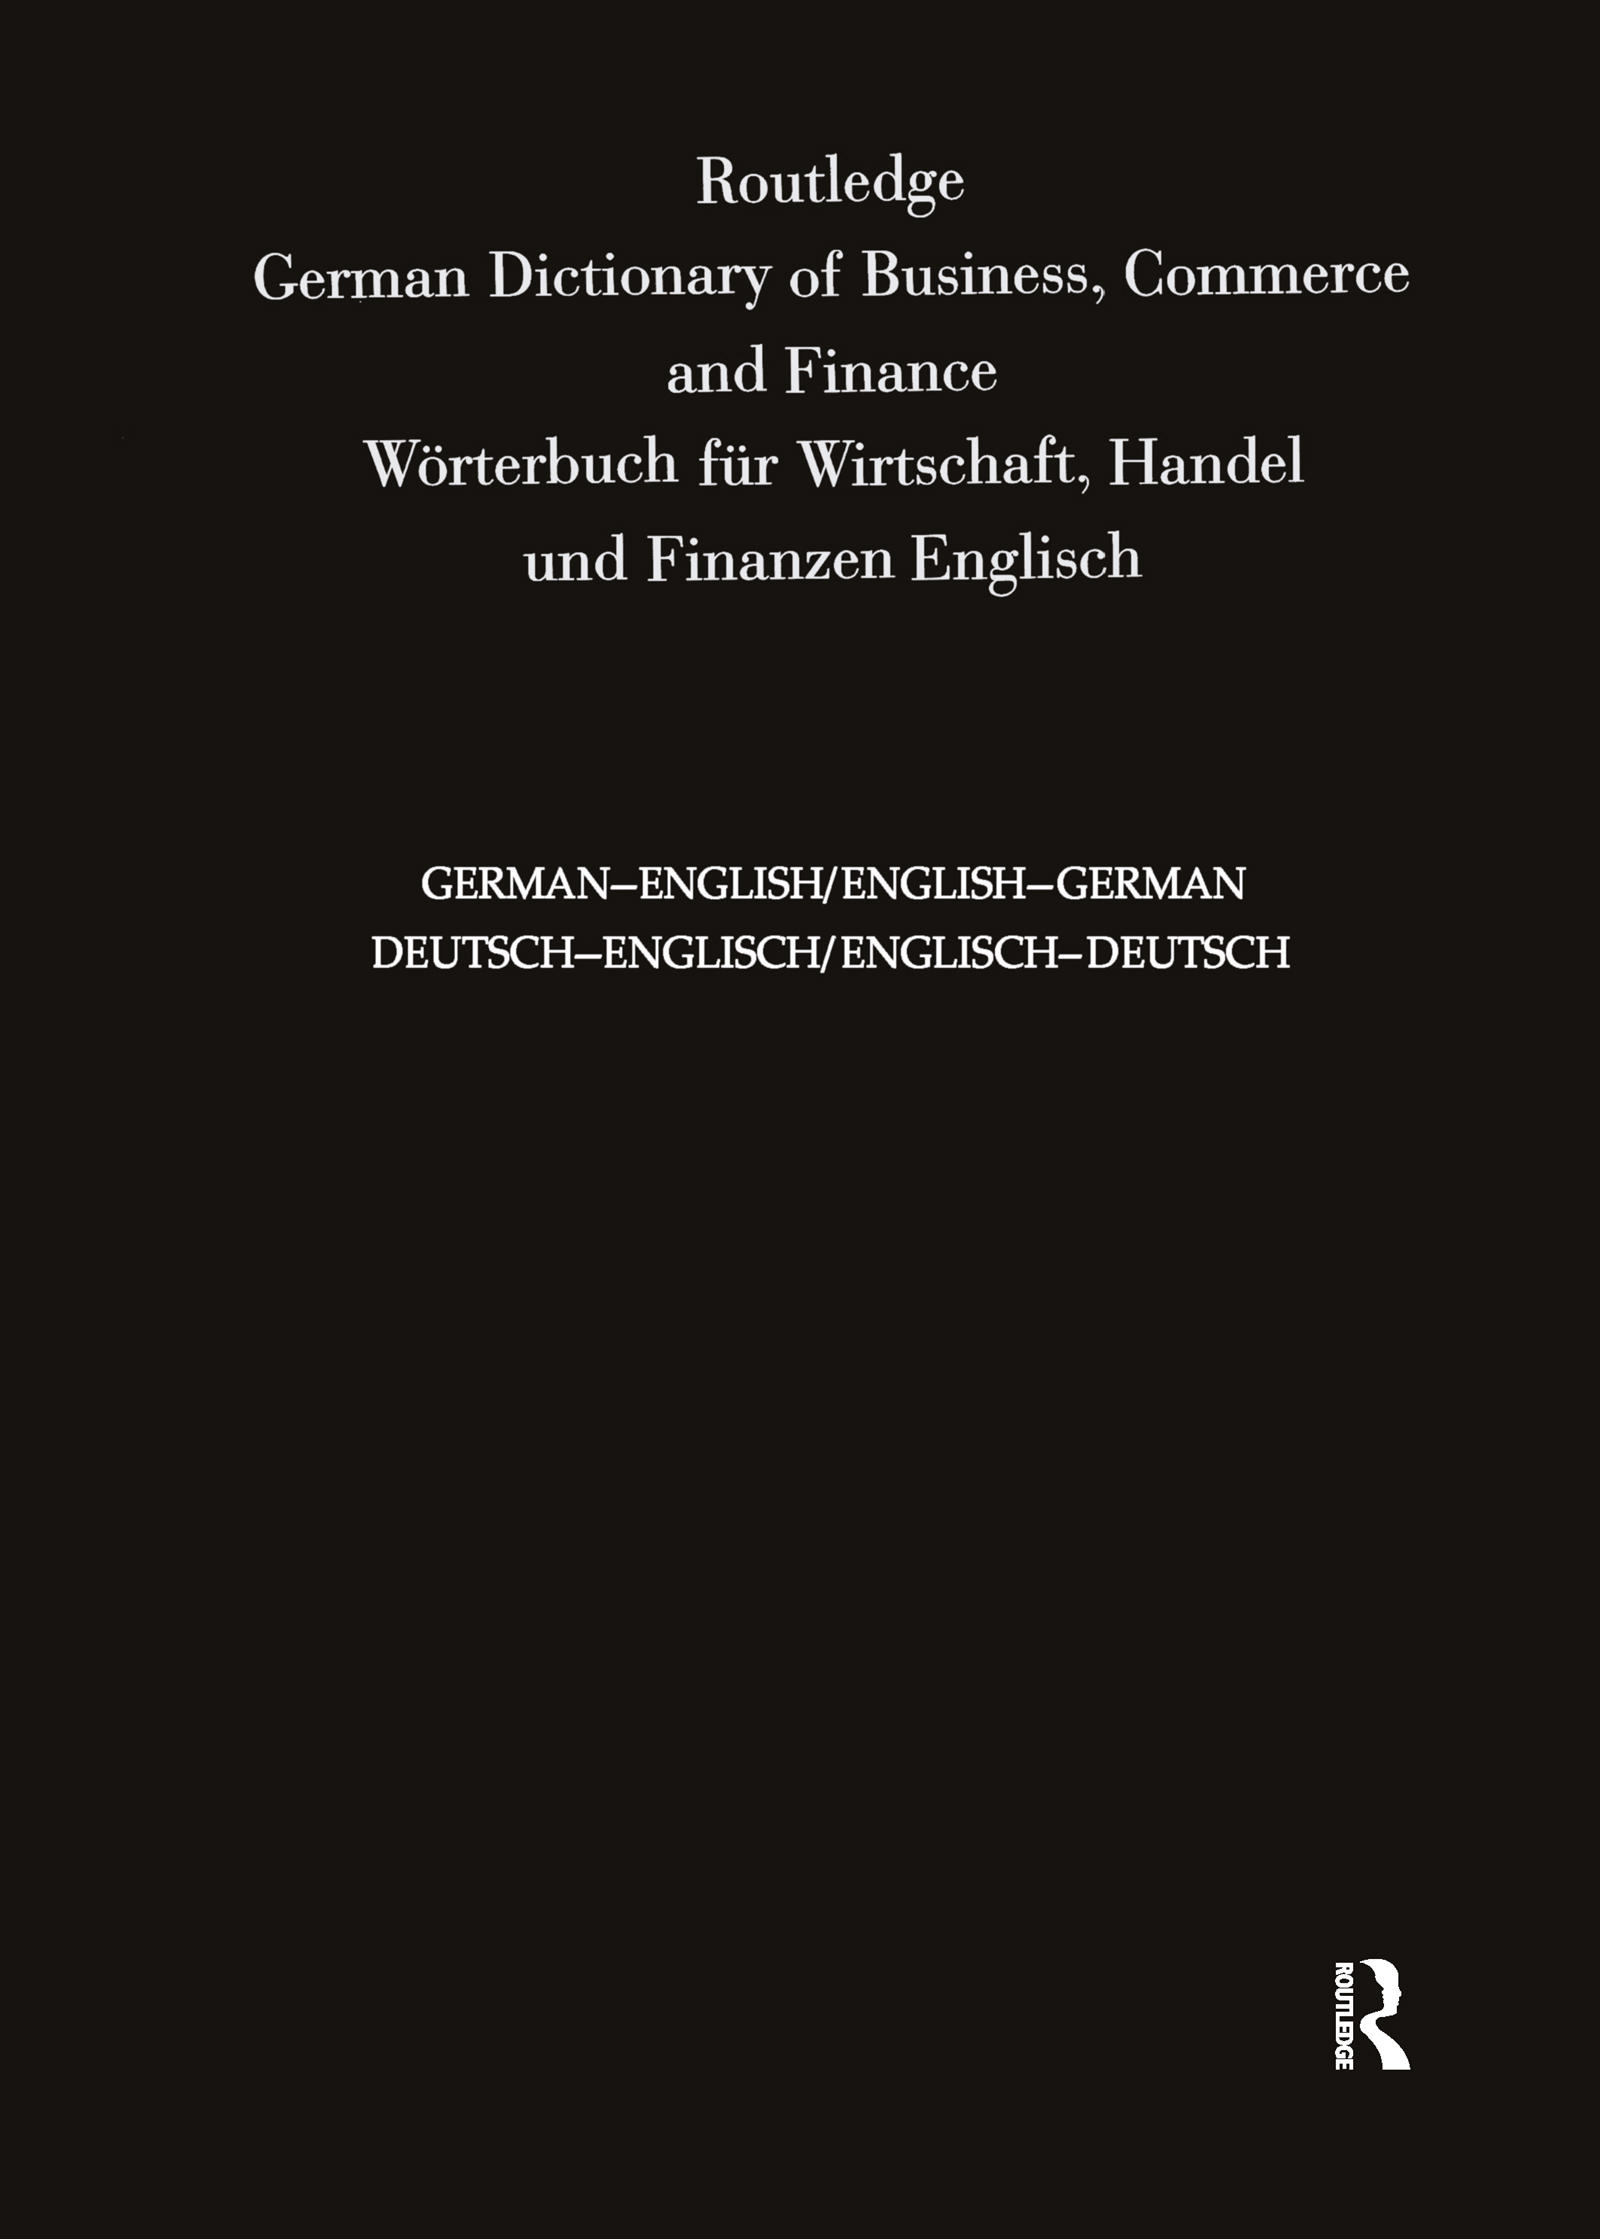 Routledge German Dictionary of Business, Commerce and Finance Worterbuch Fur Wirtschaft, Handel und Finanzen: Deutsch-Englisch/Englisch-Deutsch German-English/English-German book cover